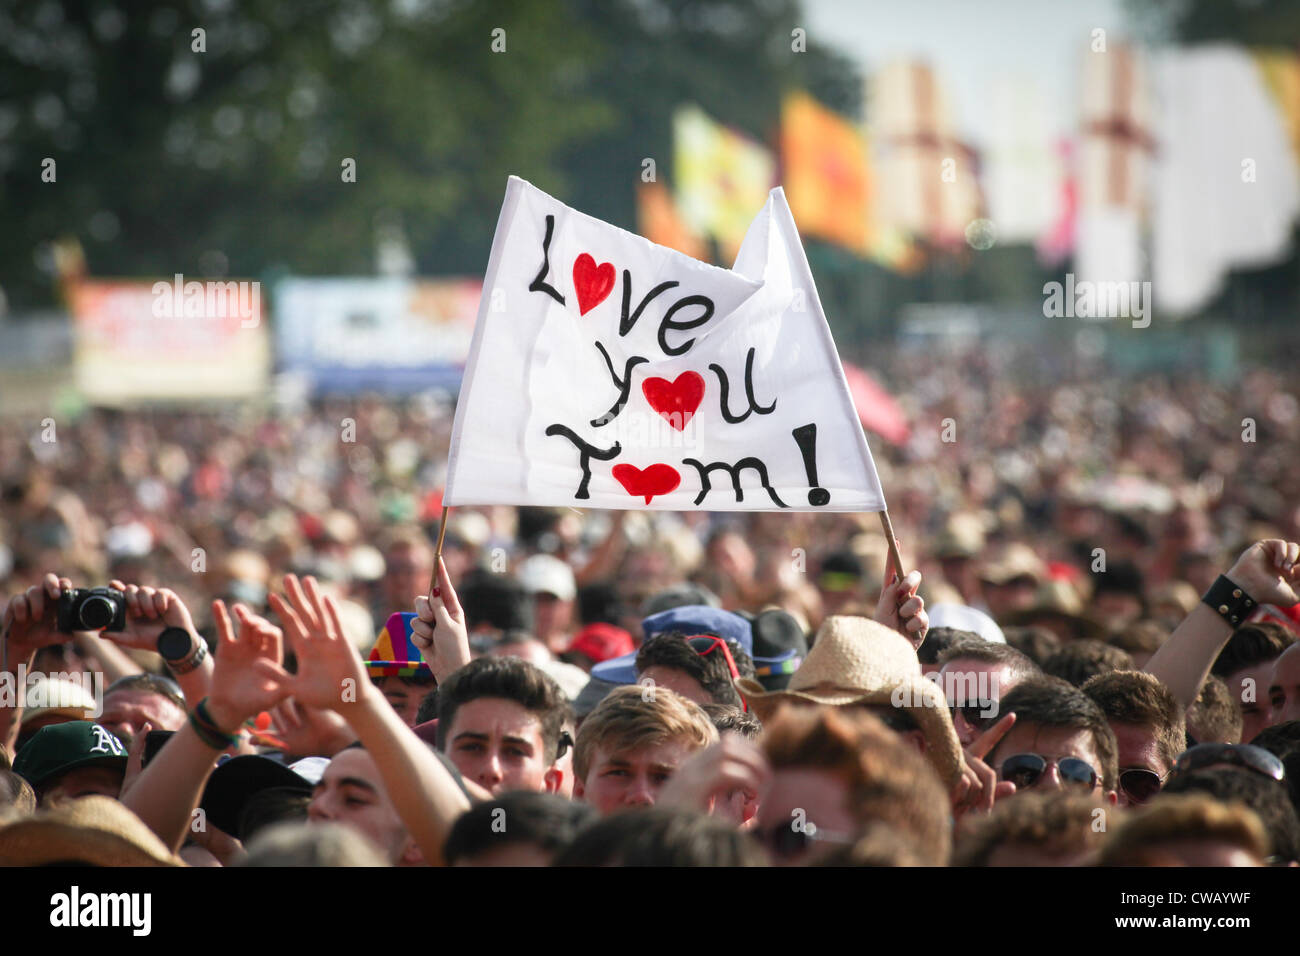 A notice in the crowd for Tom Jones at V Festival in Hylands Park, Chelmsford, Essex. The notice reads Love You - Stock Image